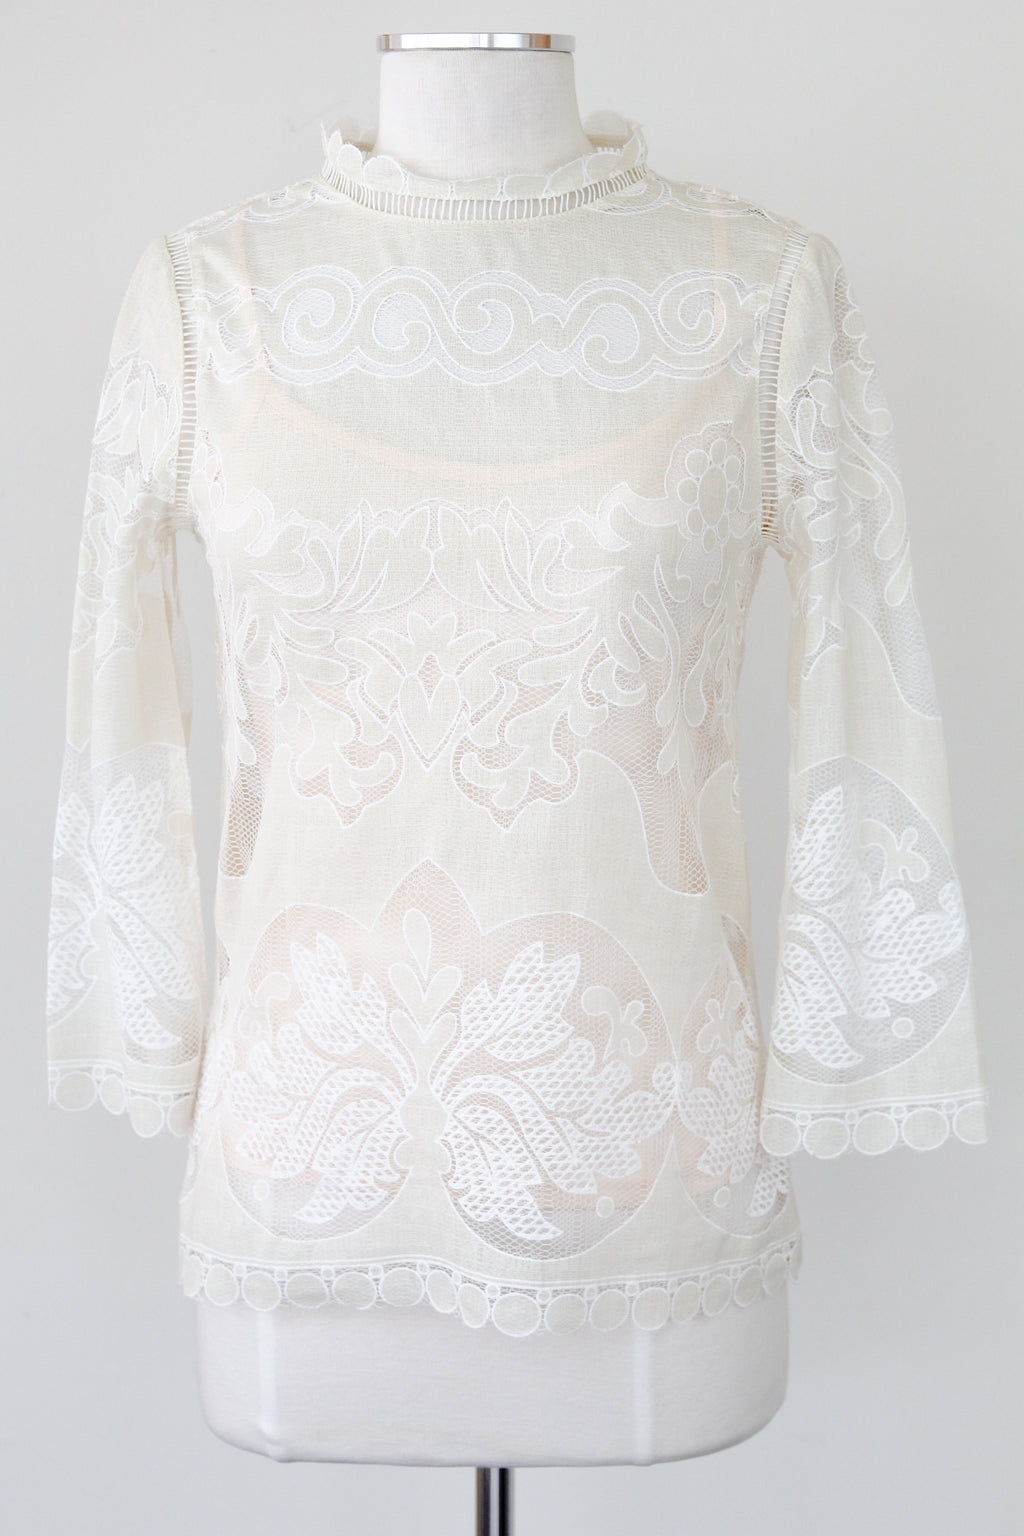 Marie Lace Top